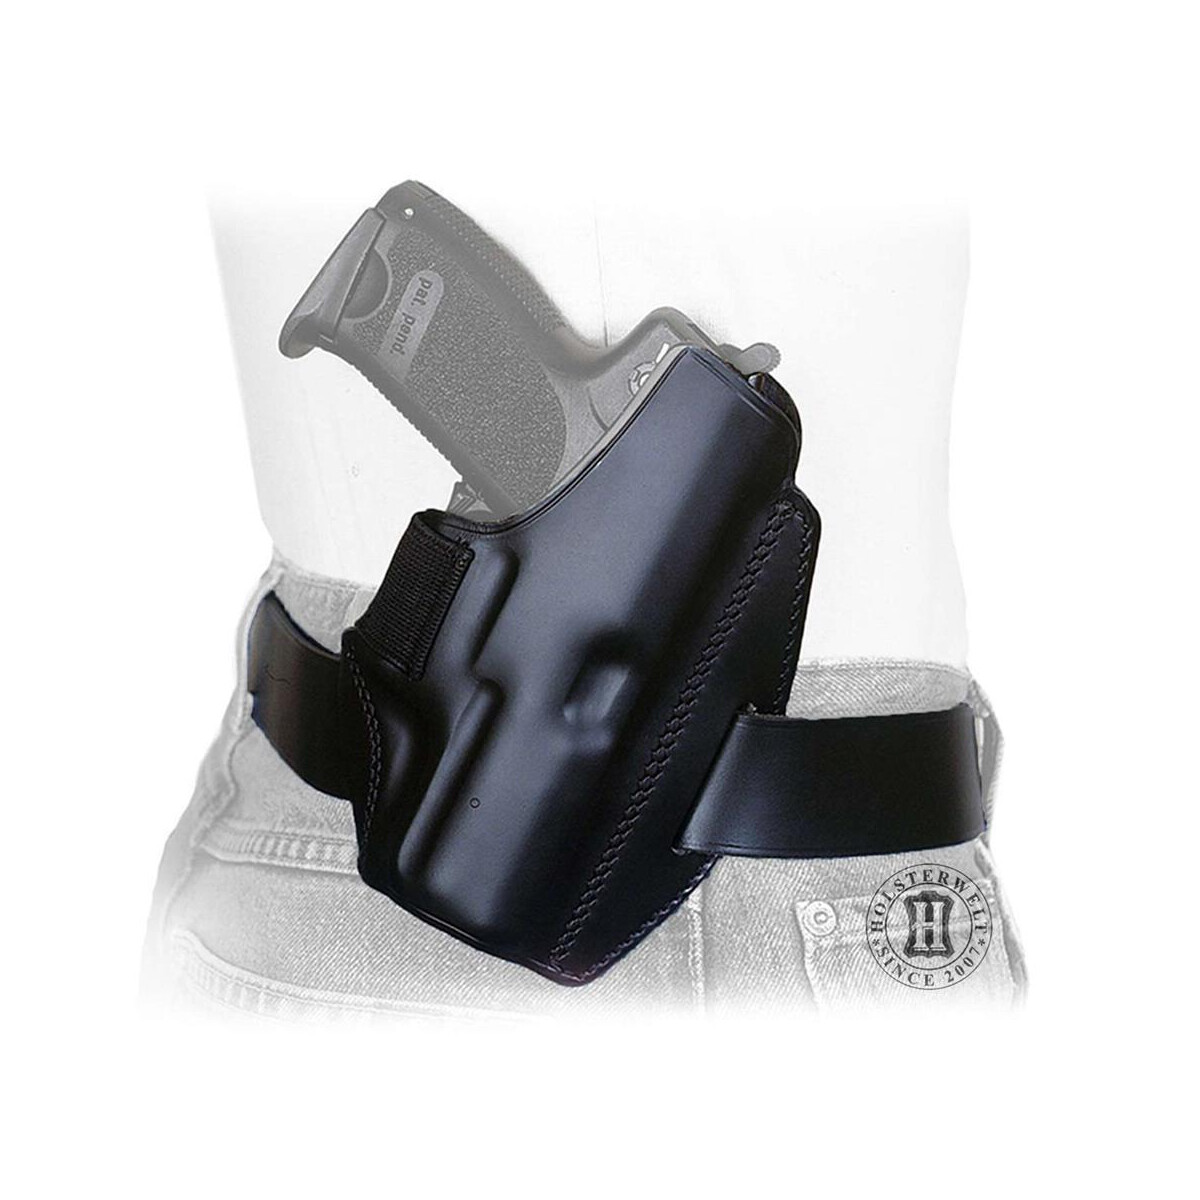 Holster QUICK DEFENSE right-Handed-black-Walther P22 - Holsterwelt I